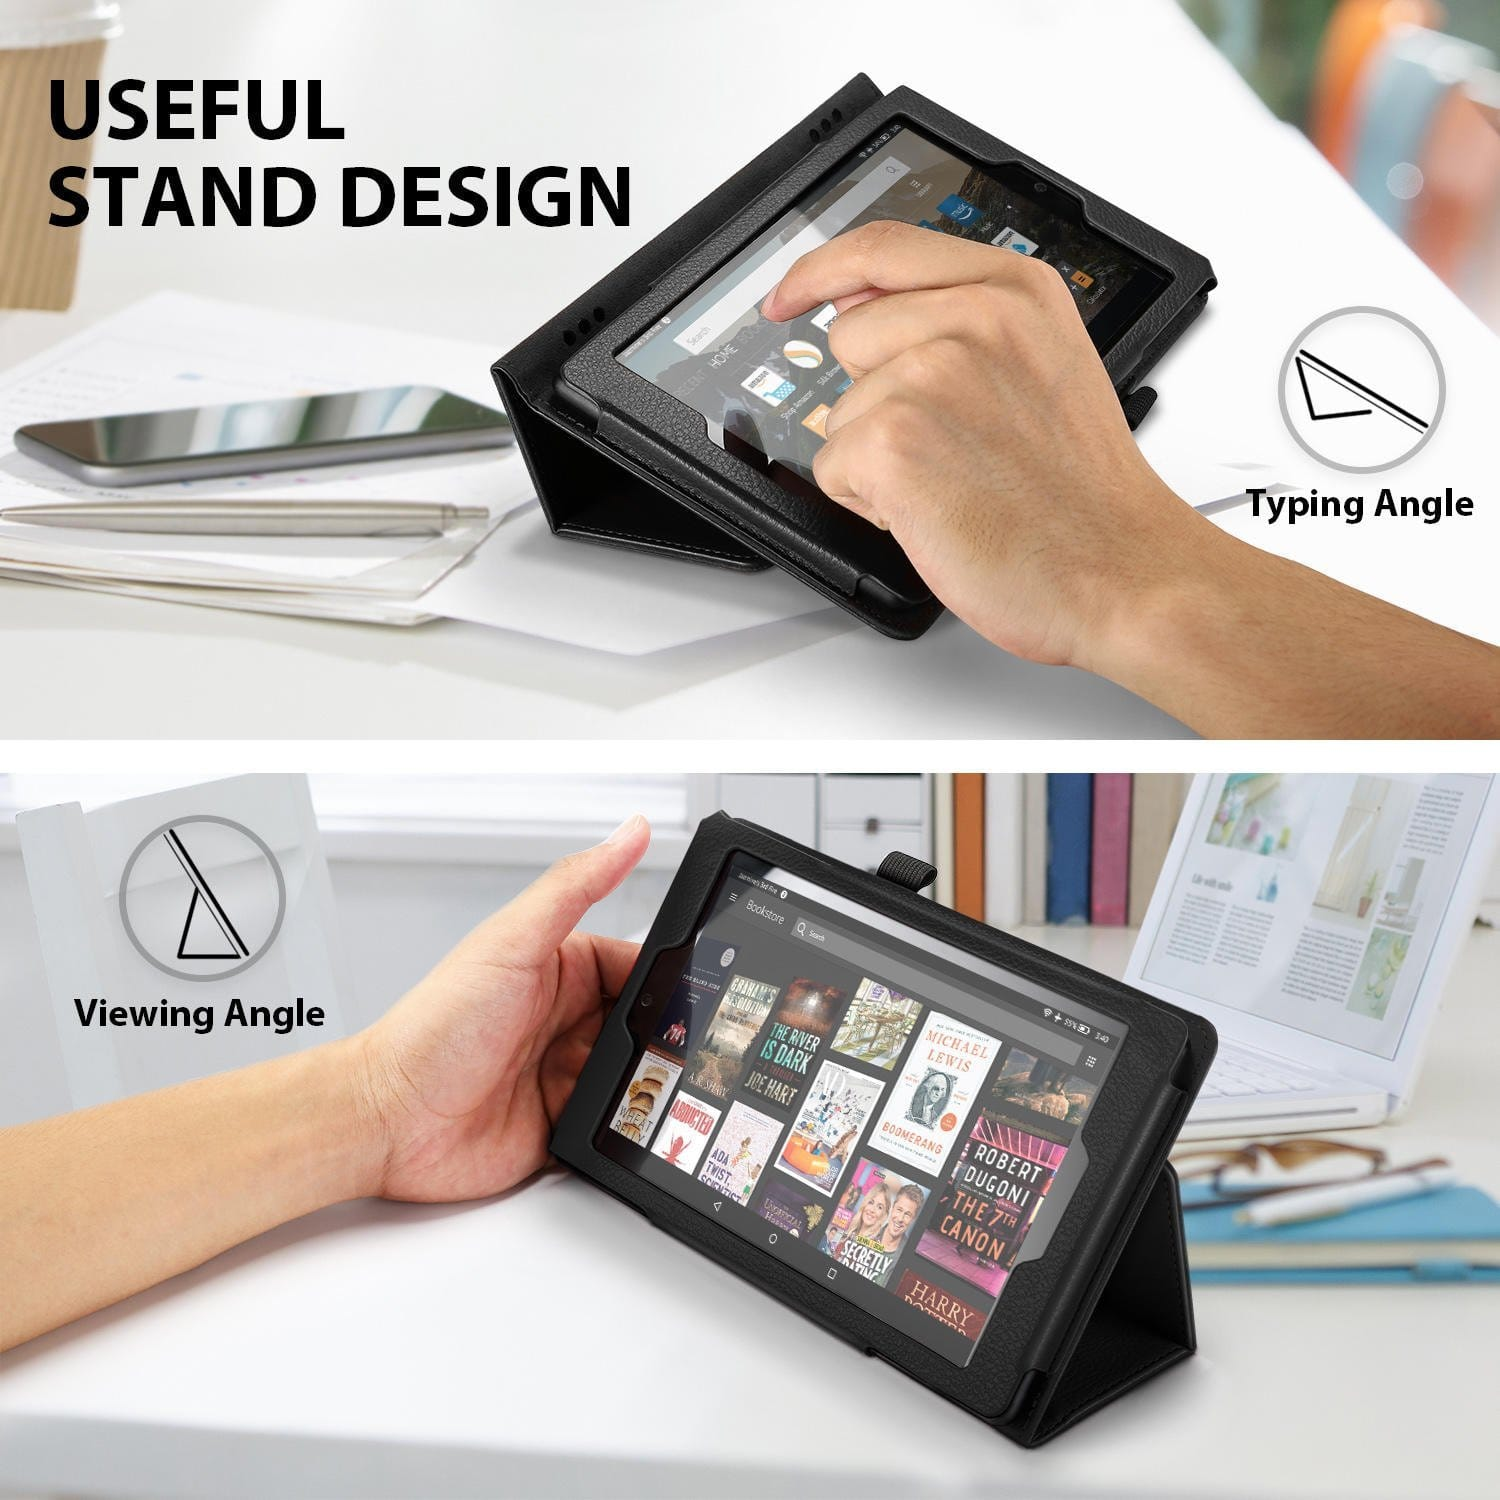 Amazon Fire HD 8 & 7 Cases in Black (PU Leather) - $5.99